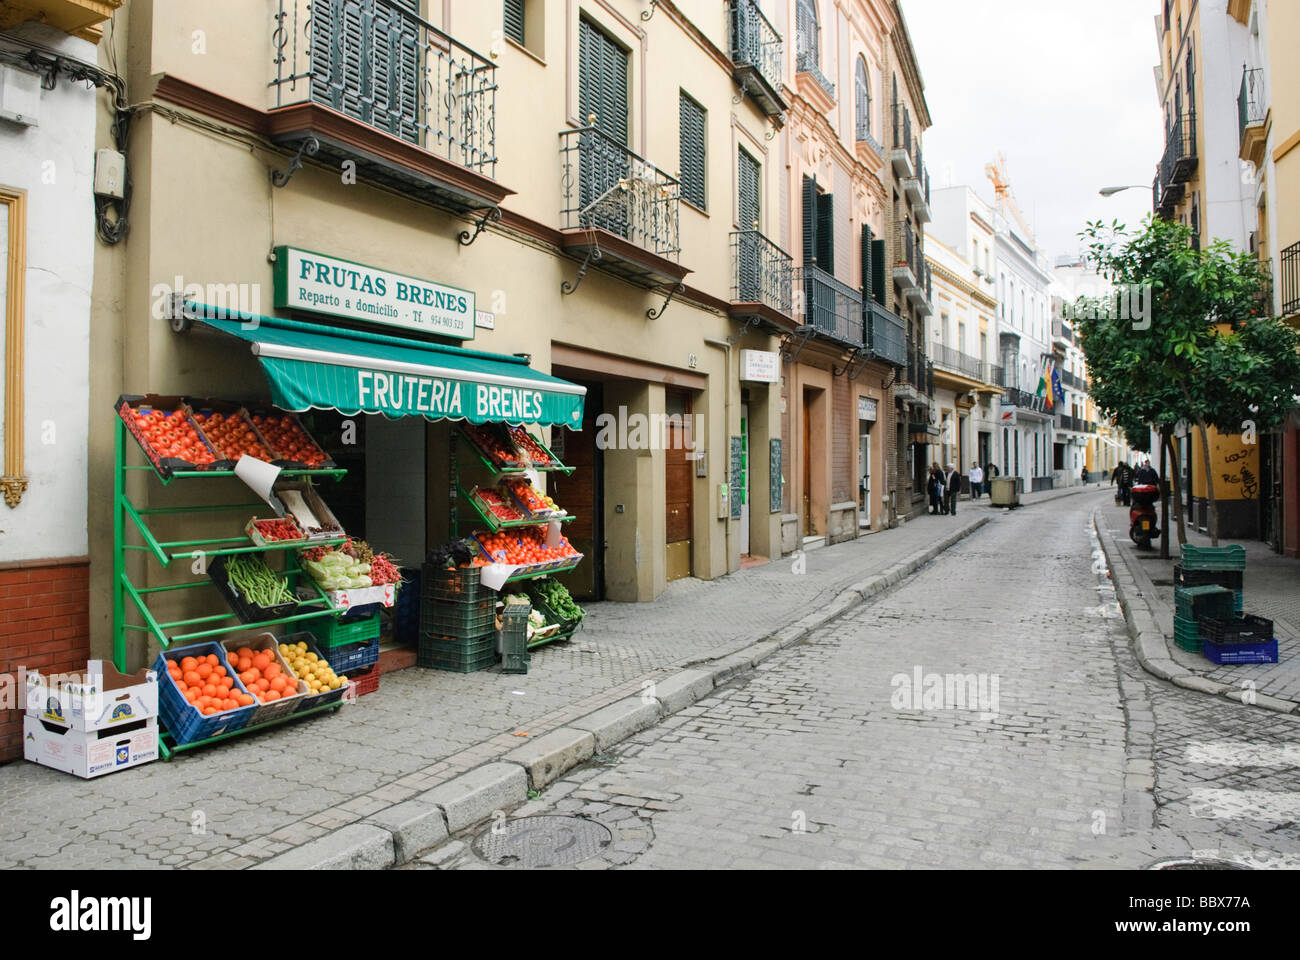 fruit and vegetable shop in Sevilla Andalucia Spain - Stock Image